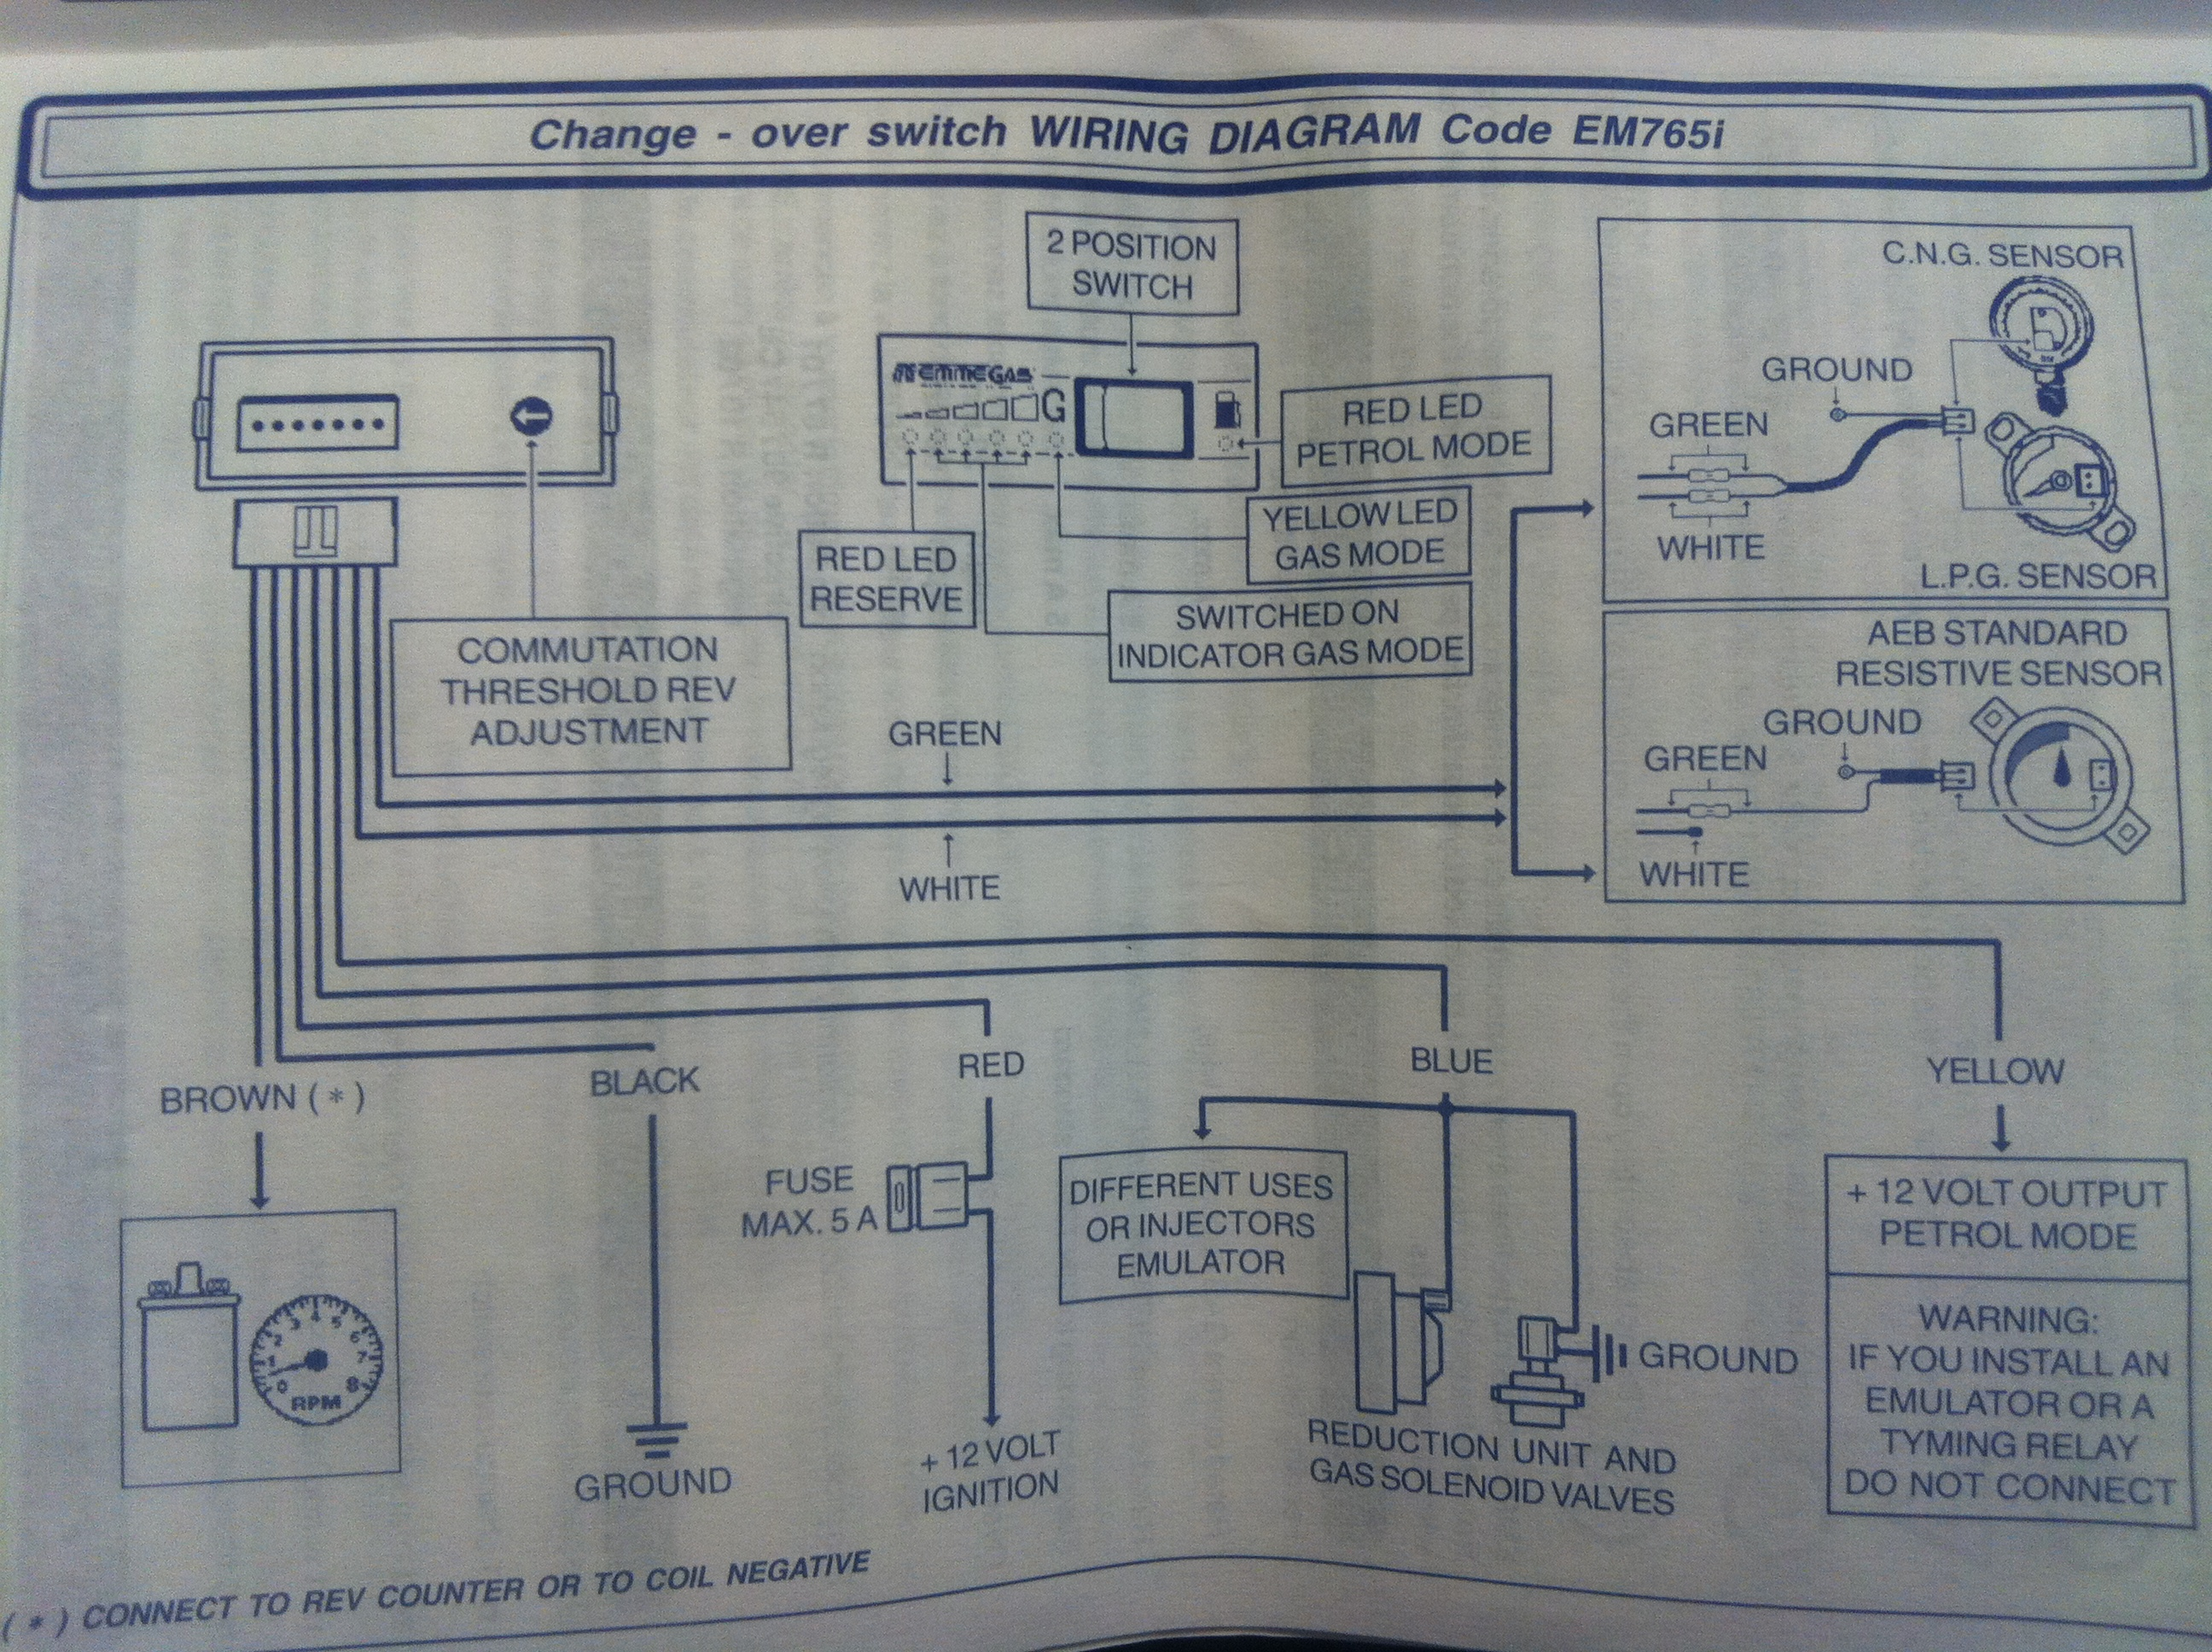 EM765i diagram_enl em765i change over switch emmegas \u2015 vlandgas lpg changeover switch wiring diagram at soozxer.org